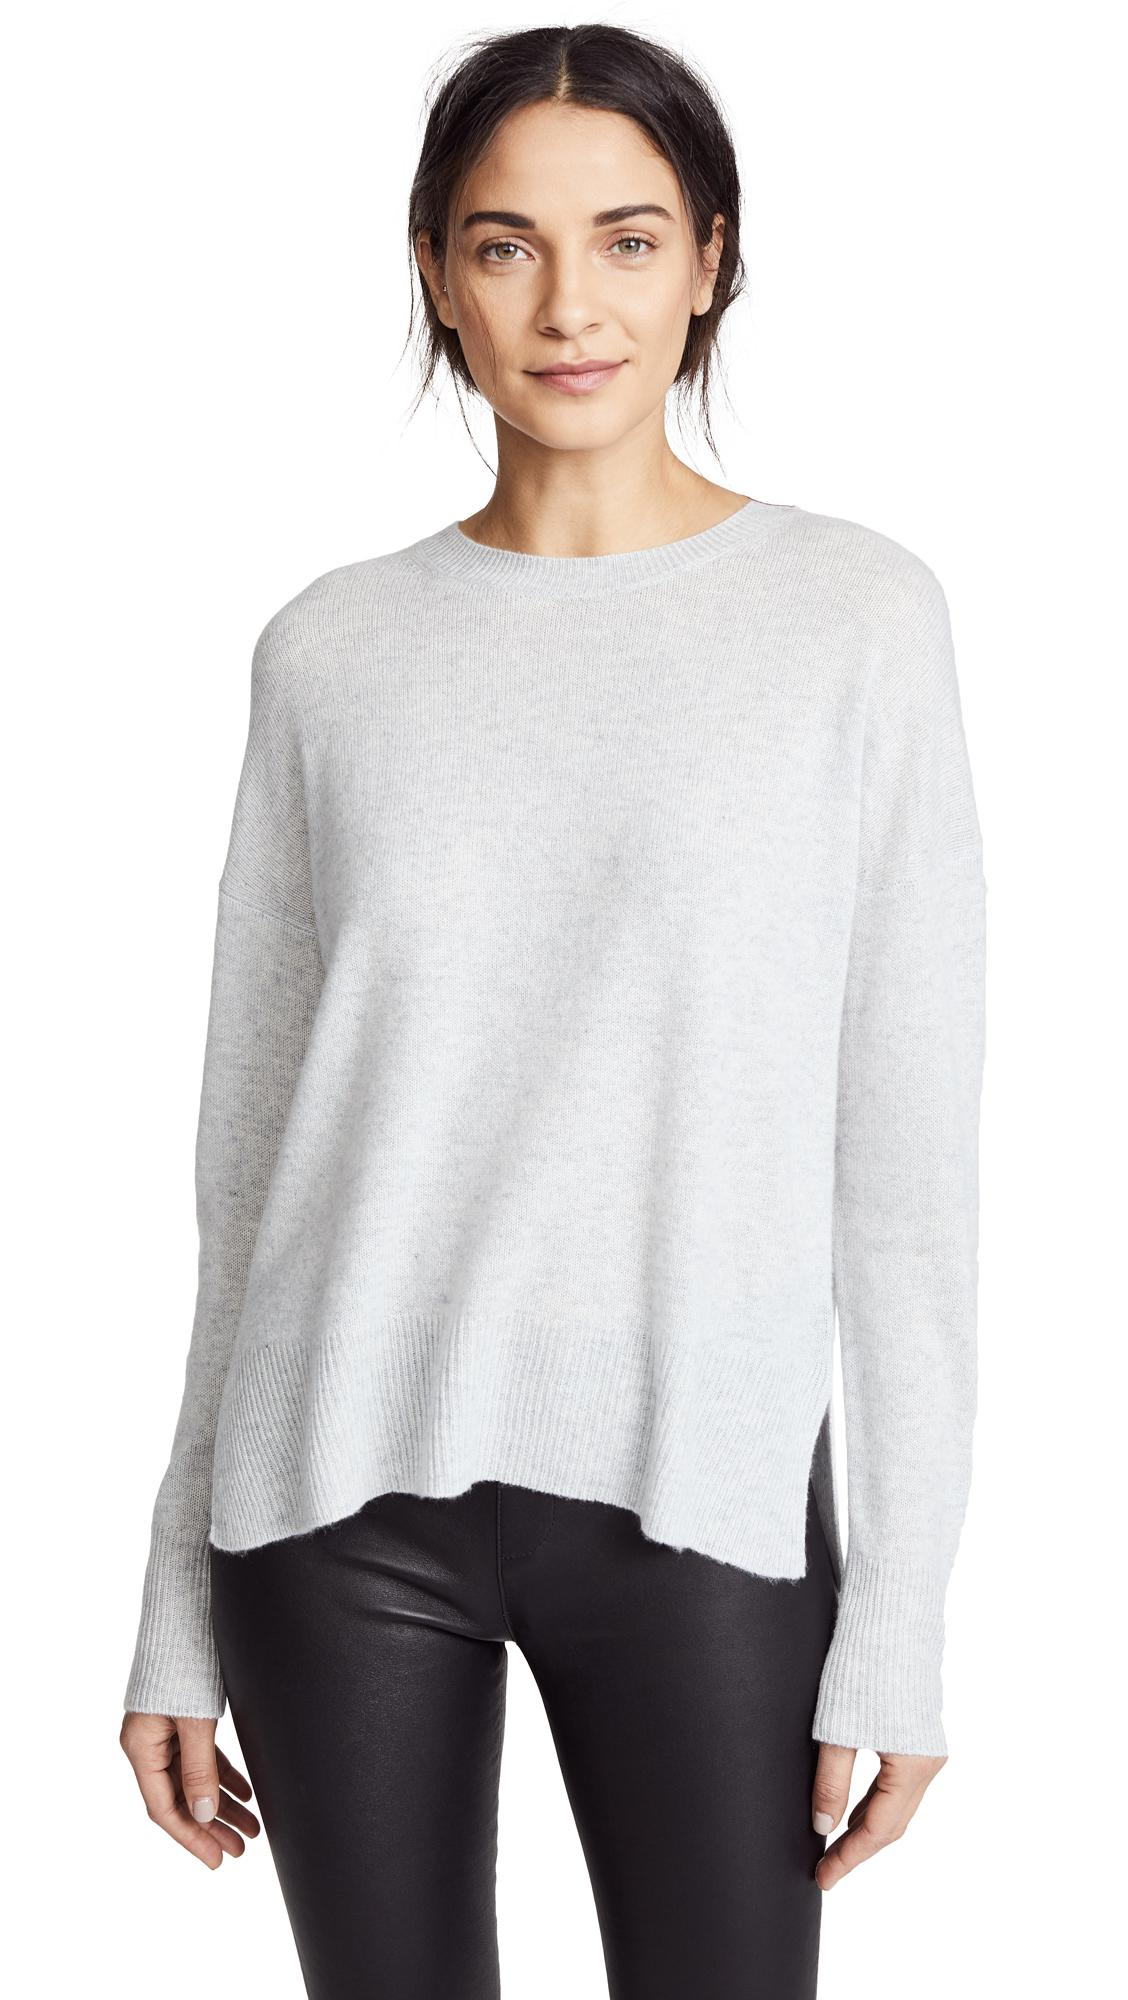 b5fad2311c Theory Karenia Cashmere Sweater In Whale Grey. SIZE & FIT INFORMATION